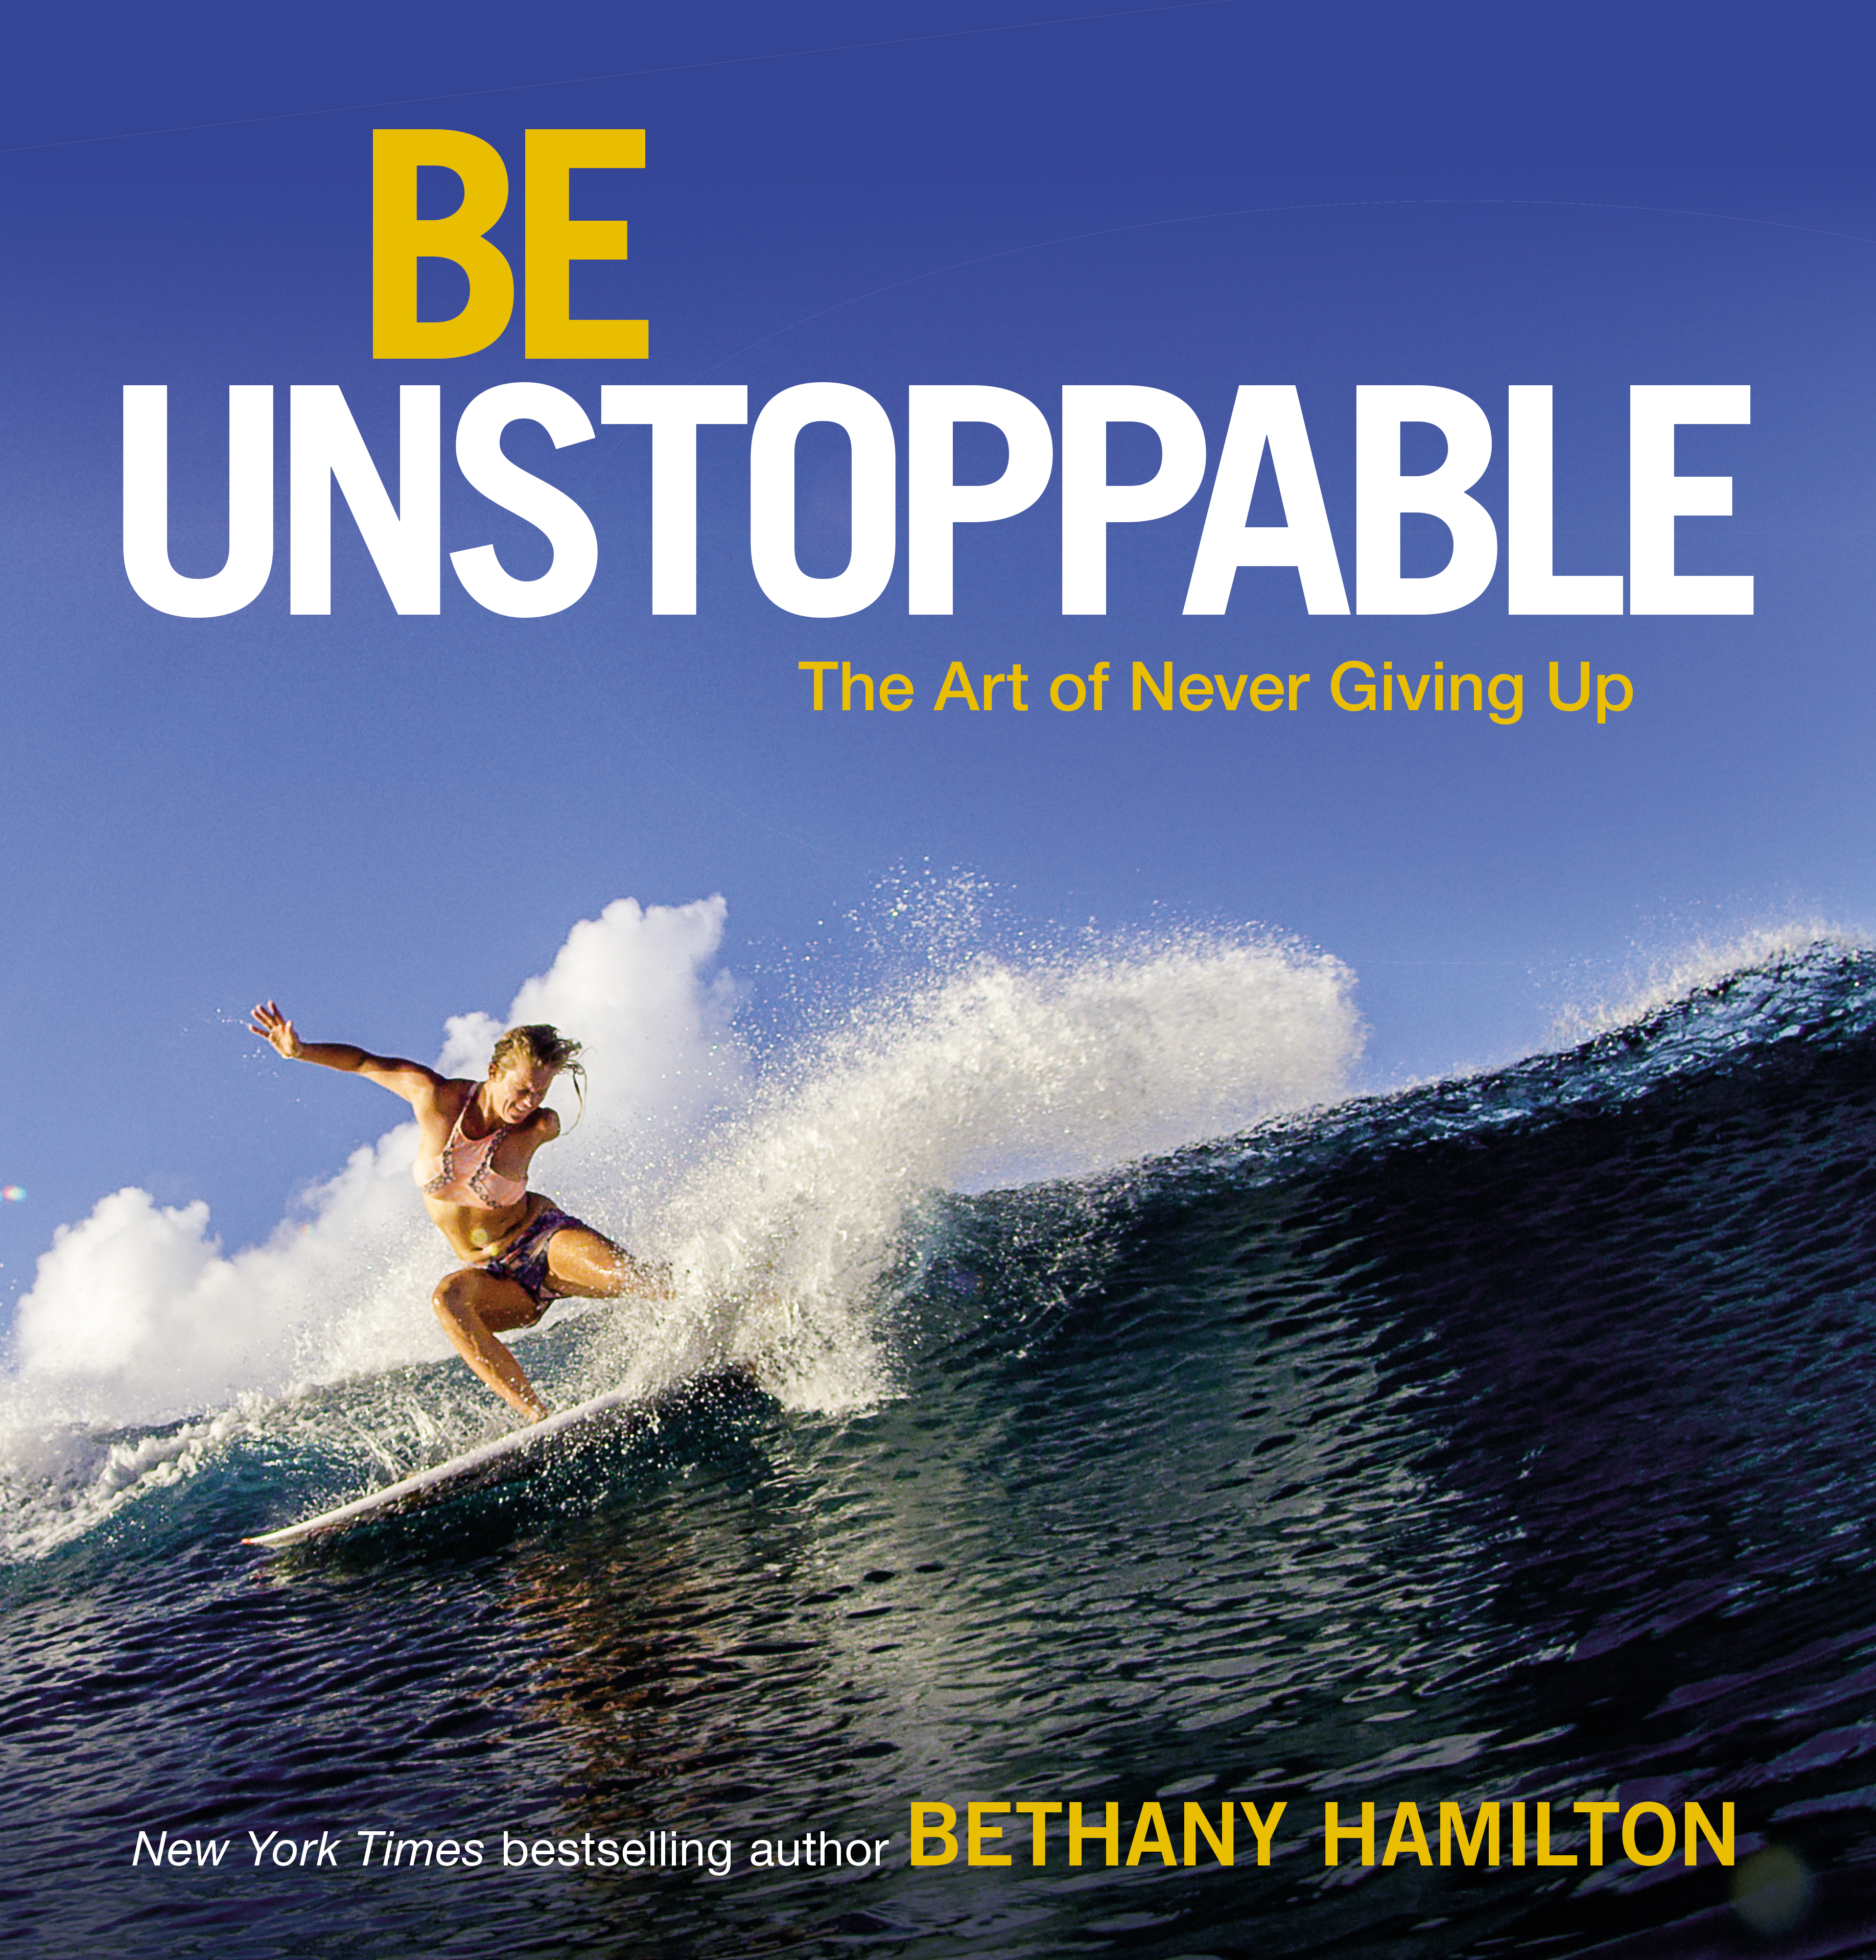 Bethany Hamilton - Be Unstoppable - the art of never giving up